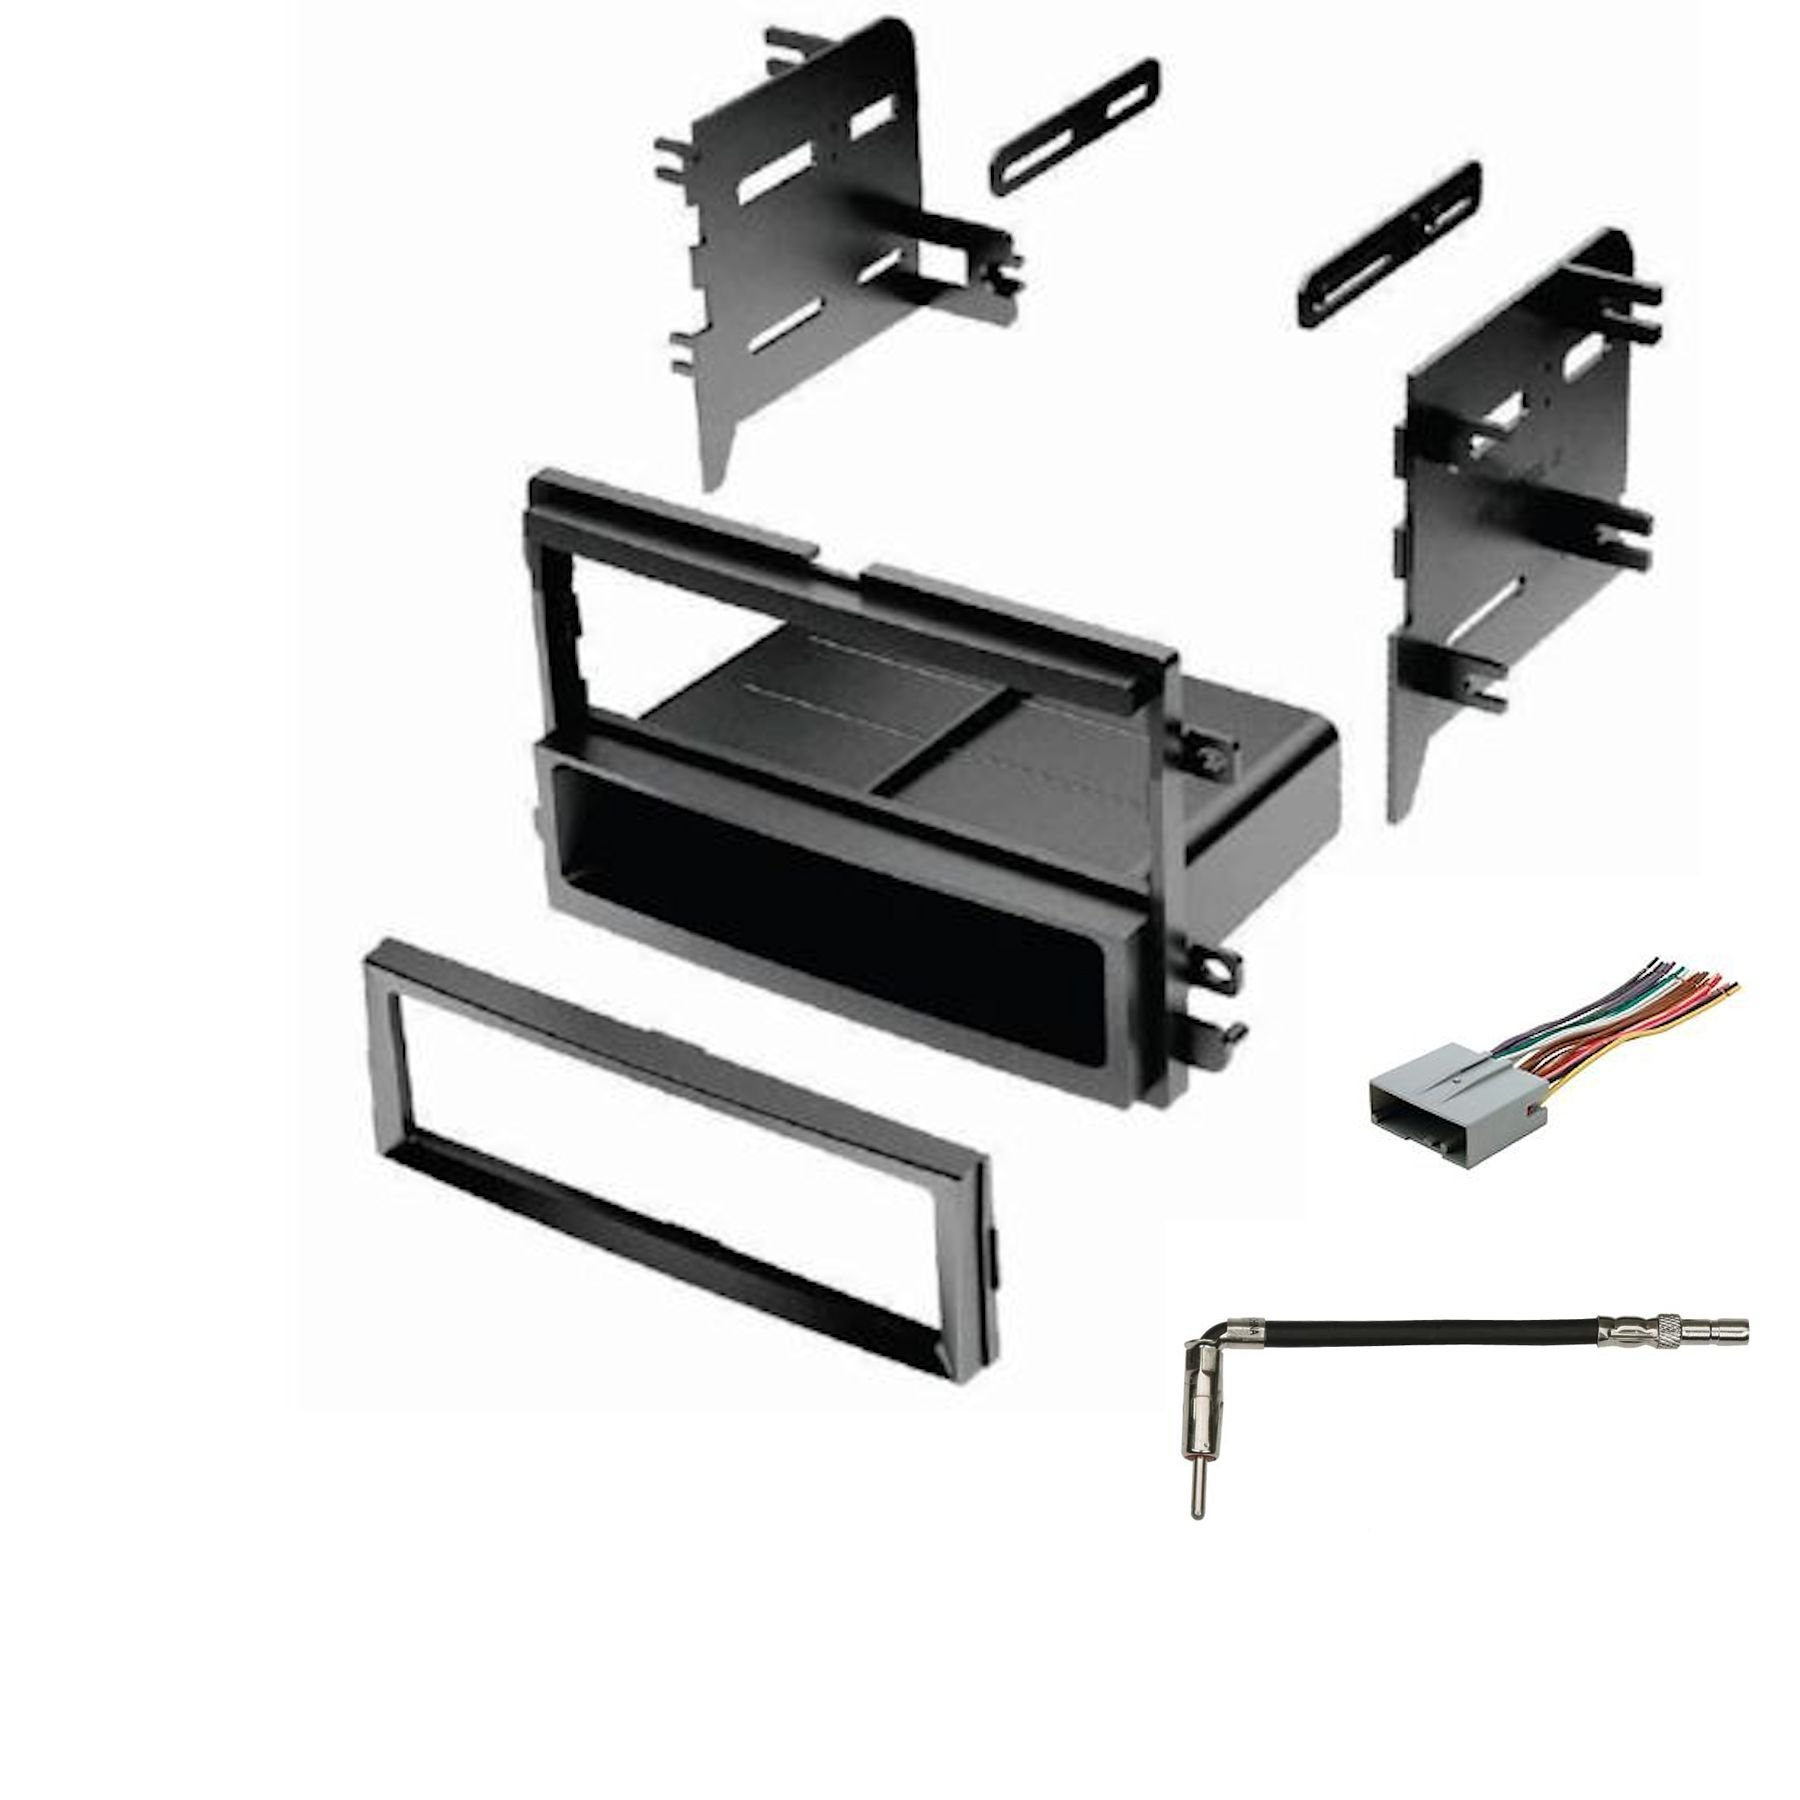 IMC Audio Single Din Dash Kit for Aftermarket Radio Installation with Wire Harness and Antenna Adapter